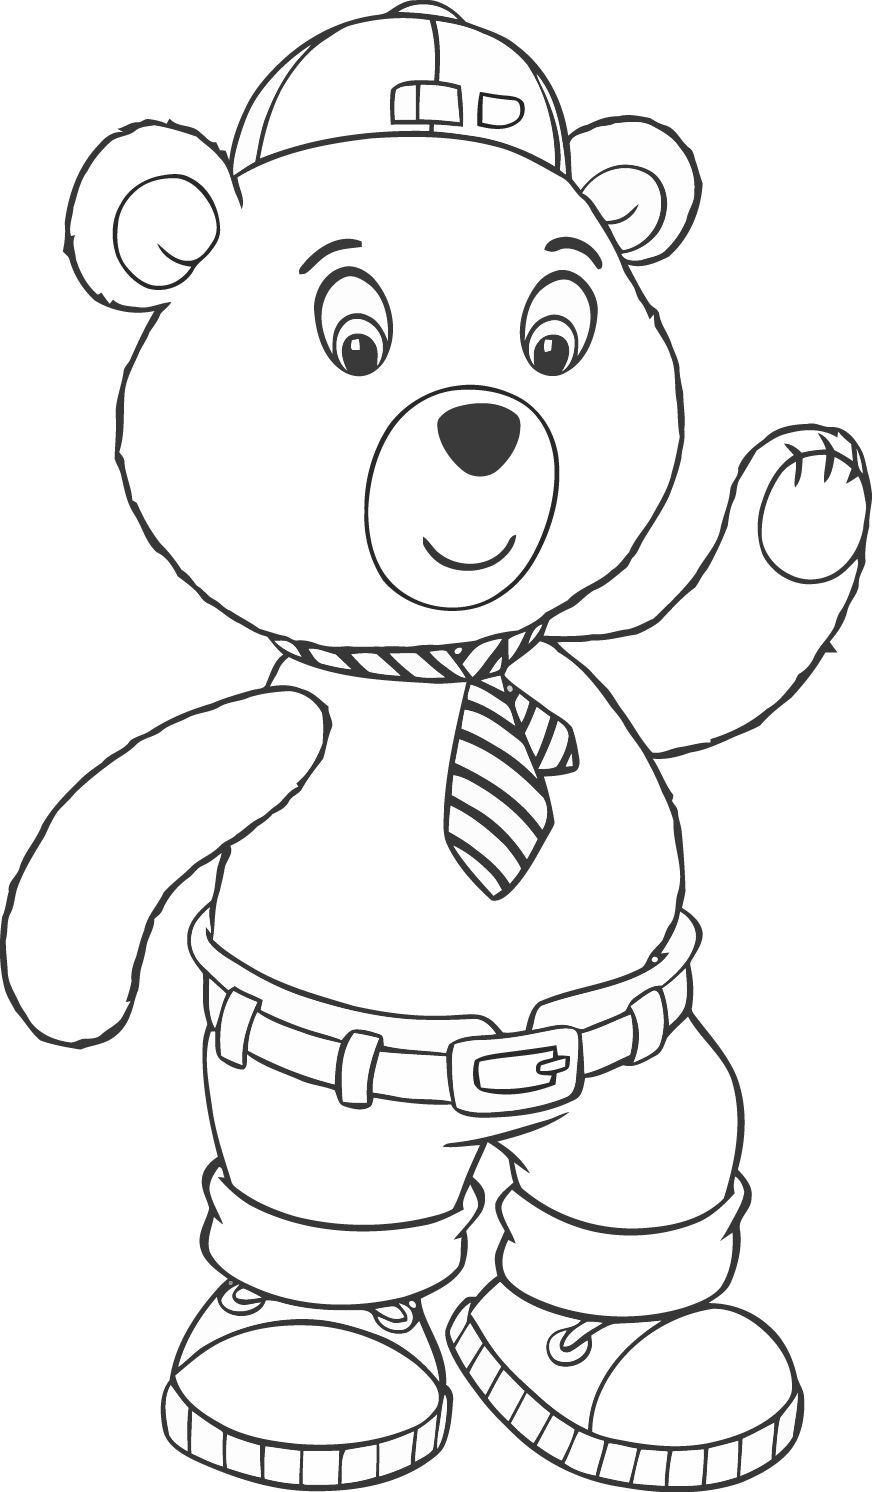 Awesome Noddy 99 Mcoloring Coloring Page Mcoloring Pinterest